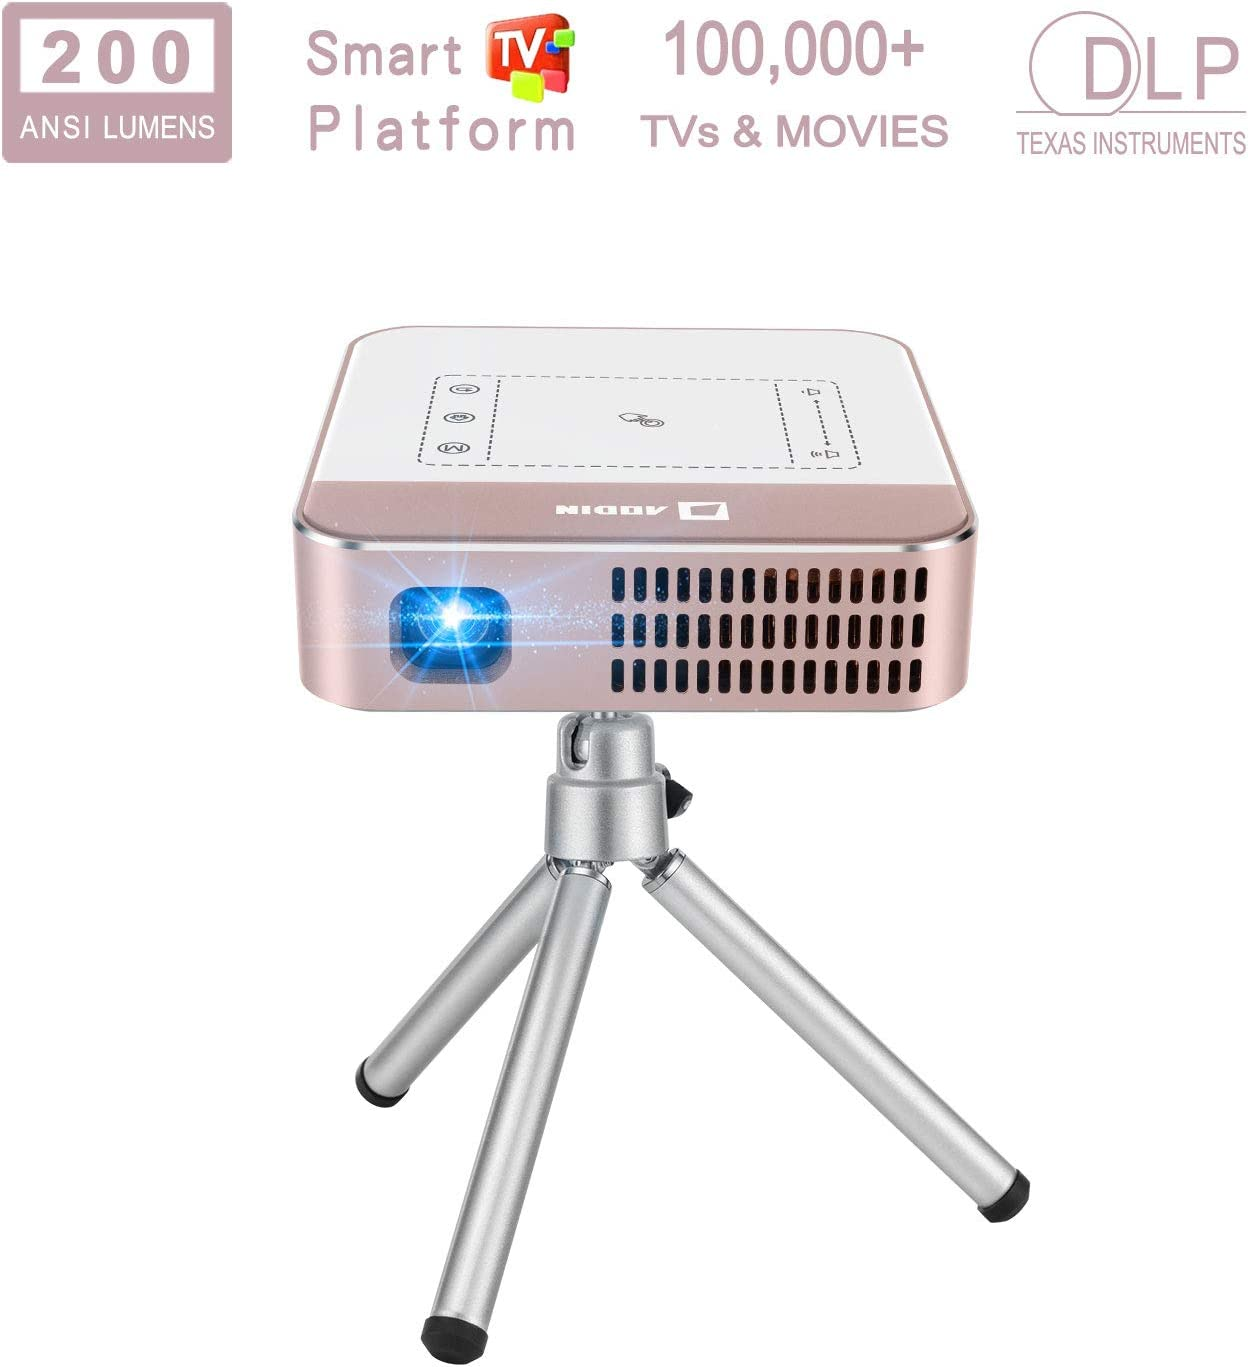 """AODIN Wow 200 ANSI Lumens Portable Projector, Mini LED WiFi Smart Projector, Outdoor Movie Projector, 300"""" Bright & Clear Image, Stereo Speaker, Support Smartphone, Tablet, Laptop, PC, 2 Hours Working"""